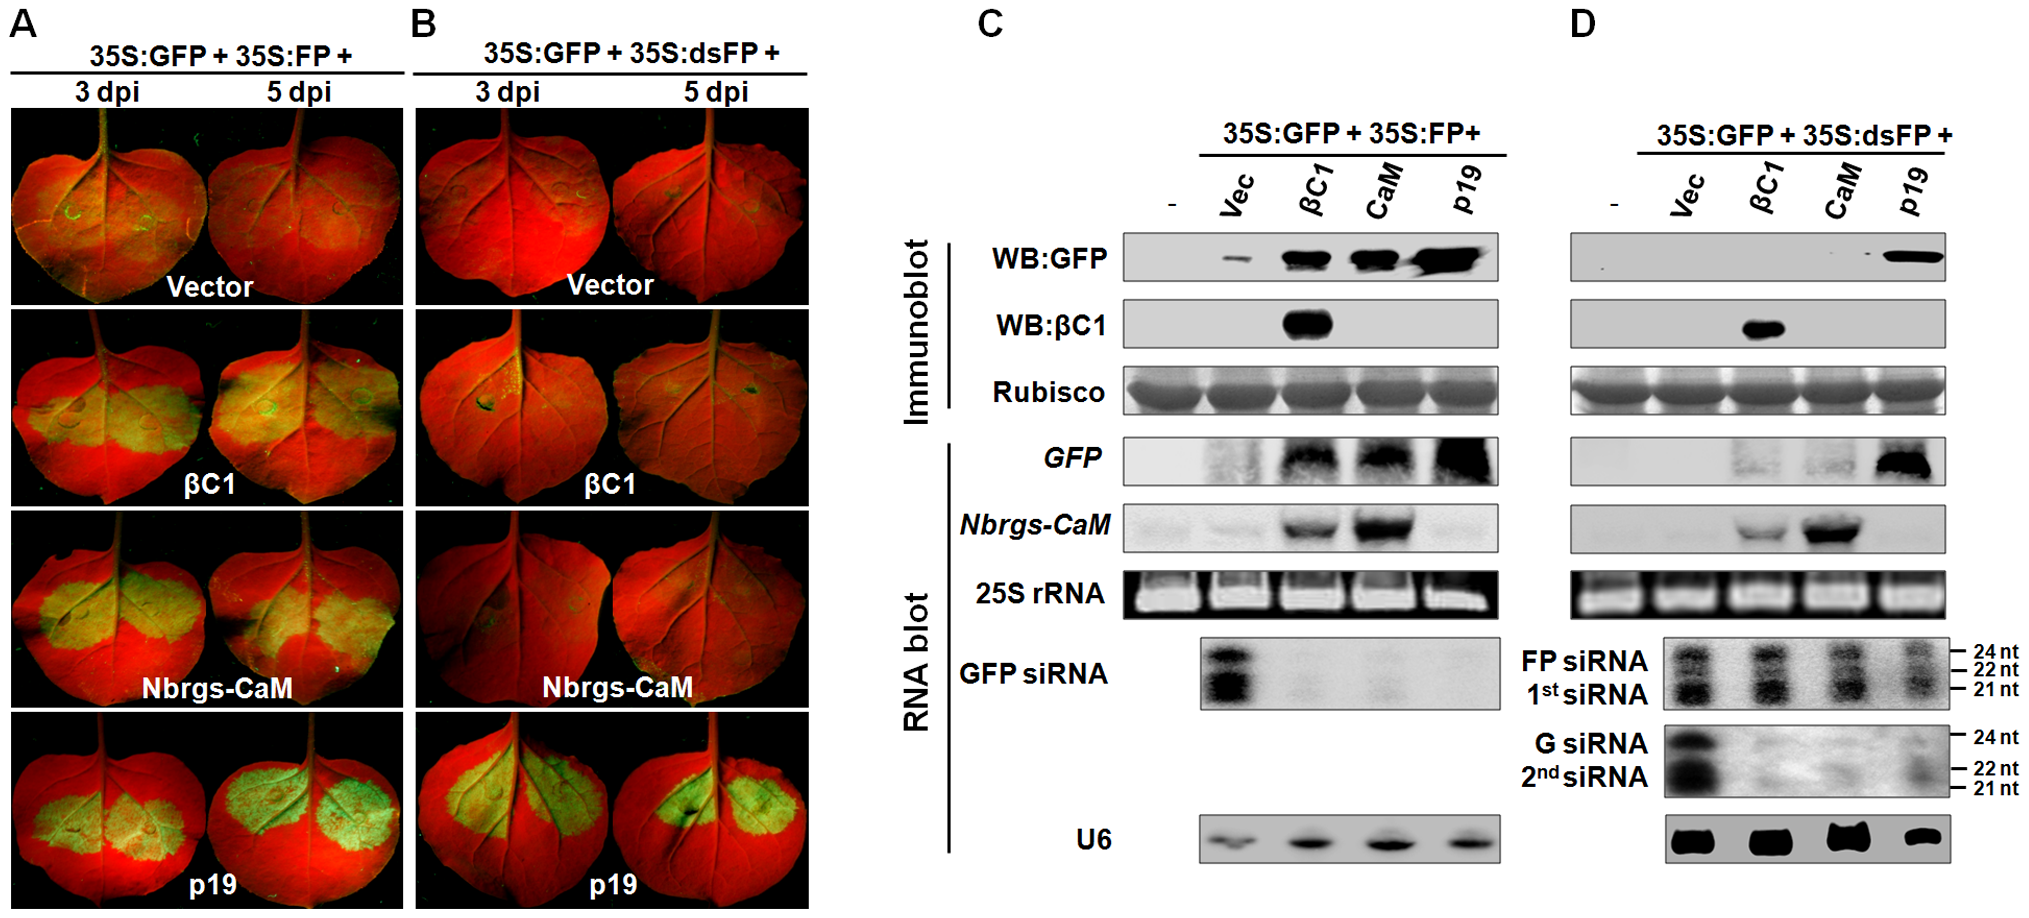 Nbrgs-CaM and βC1 suppress sense-PTGS and the production of secondary siRNA.